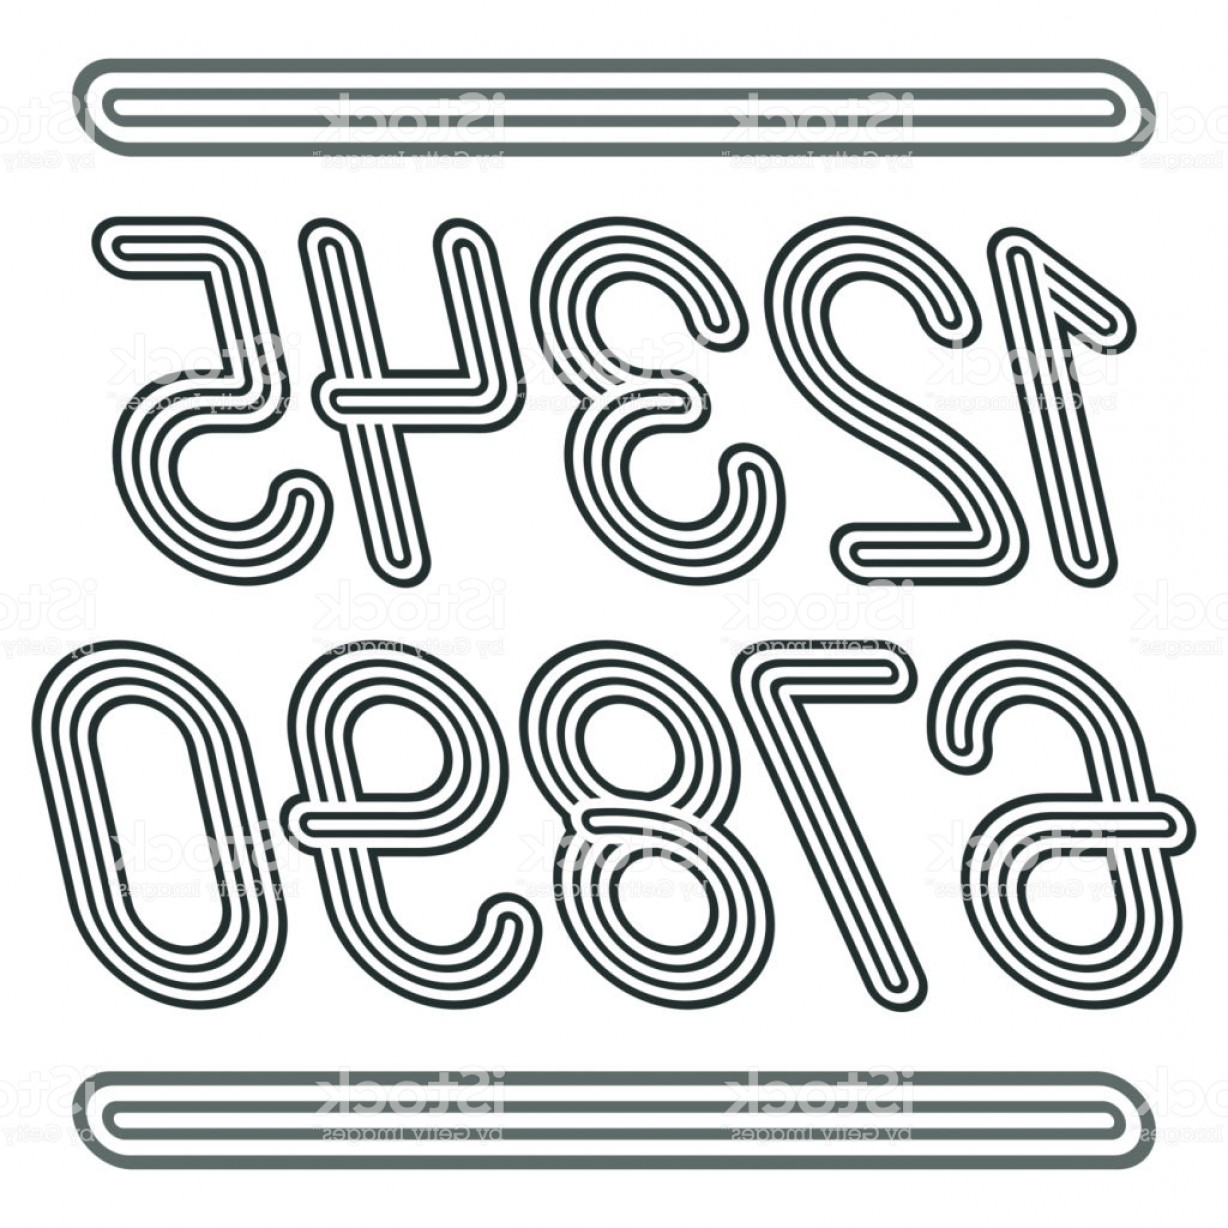 Cursive Lines Vector: Set Of Stylish Disco Vector Digits Modern Numerals Collection Funky Cursive Gm